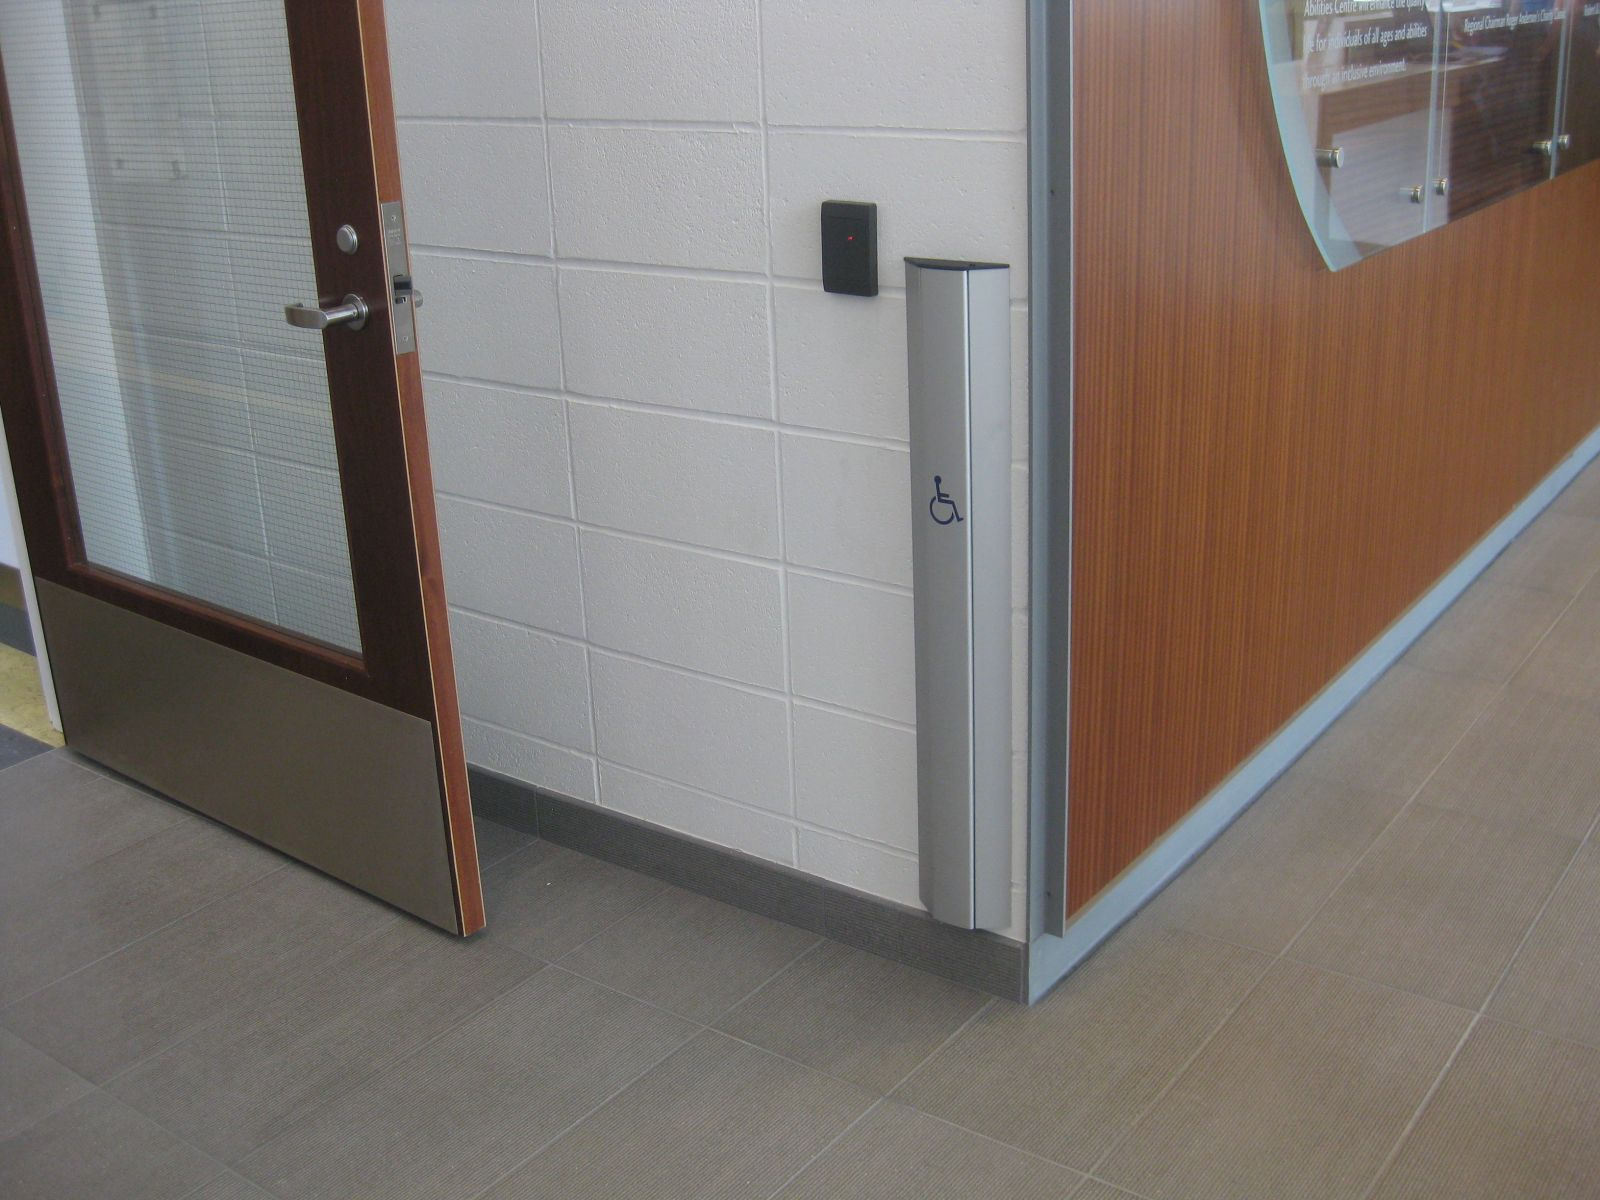 View of an extended power door operator control